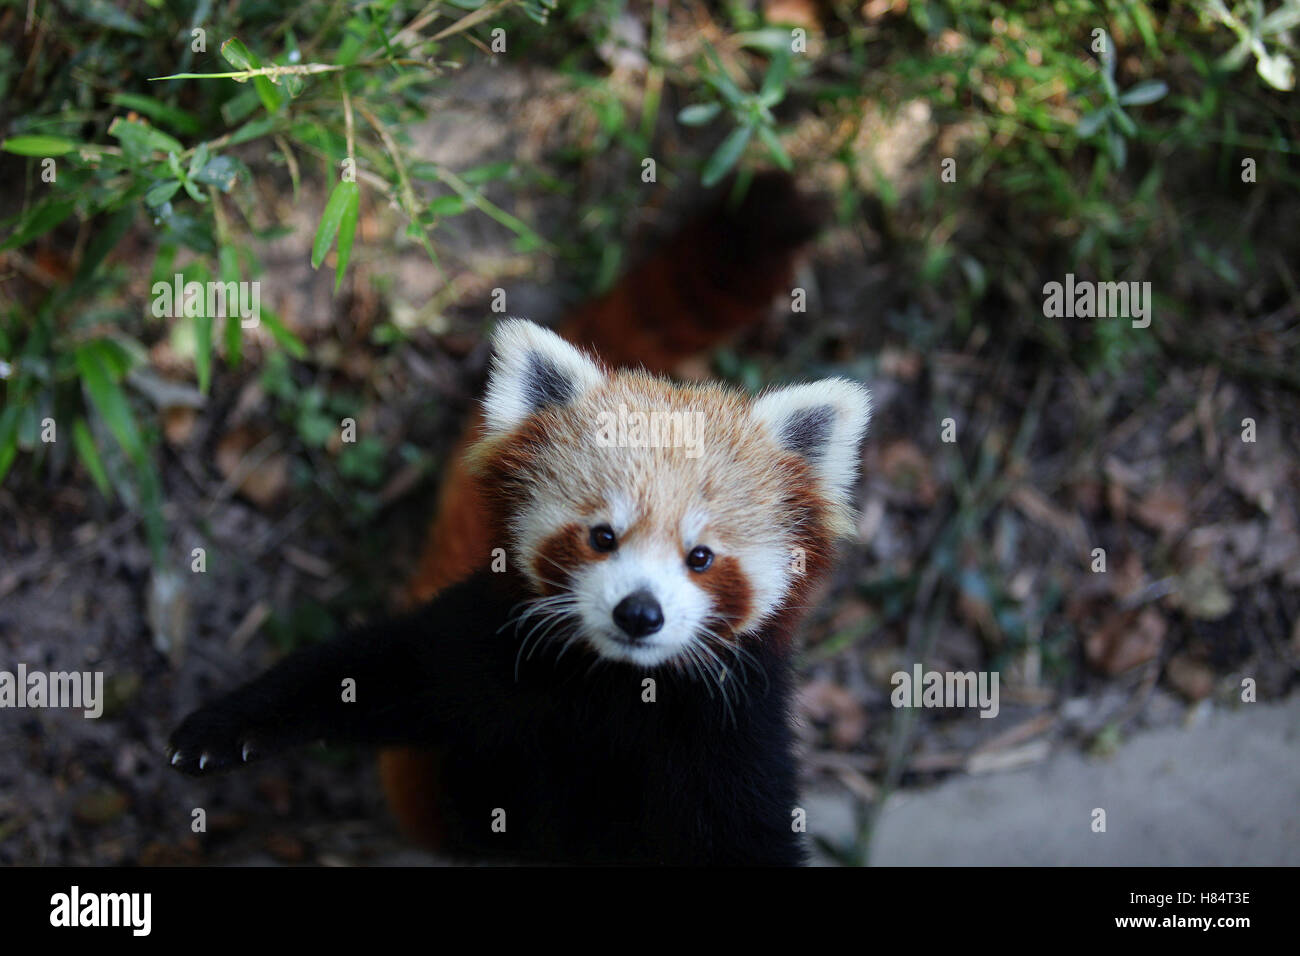 (161109) -- LALITPUR (NEPAL), Nov. 9, 2016 (Xinhua) -- A red panda waits to be fed at the Central Zoo in Lalitpur, Stock Photo